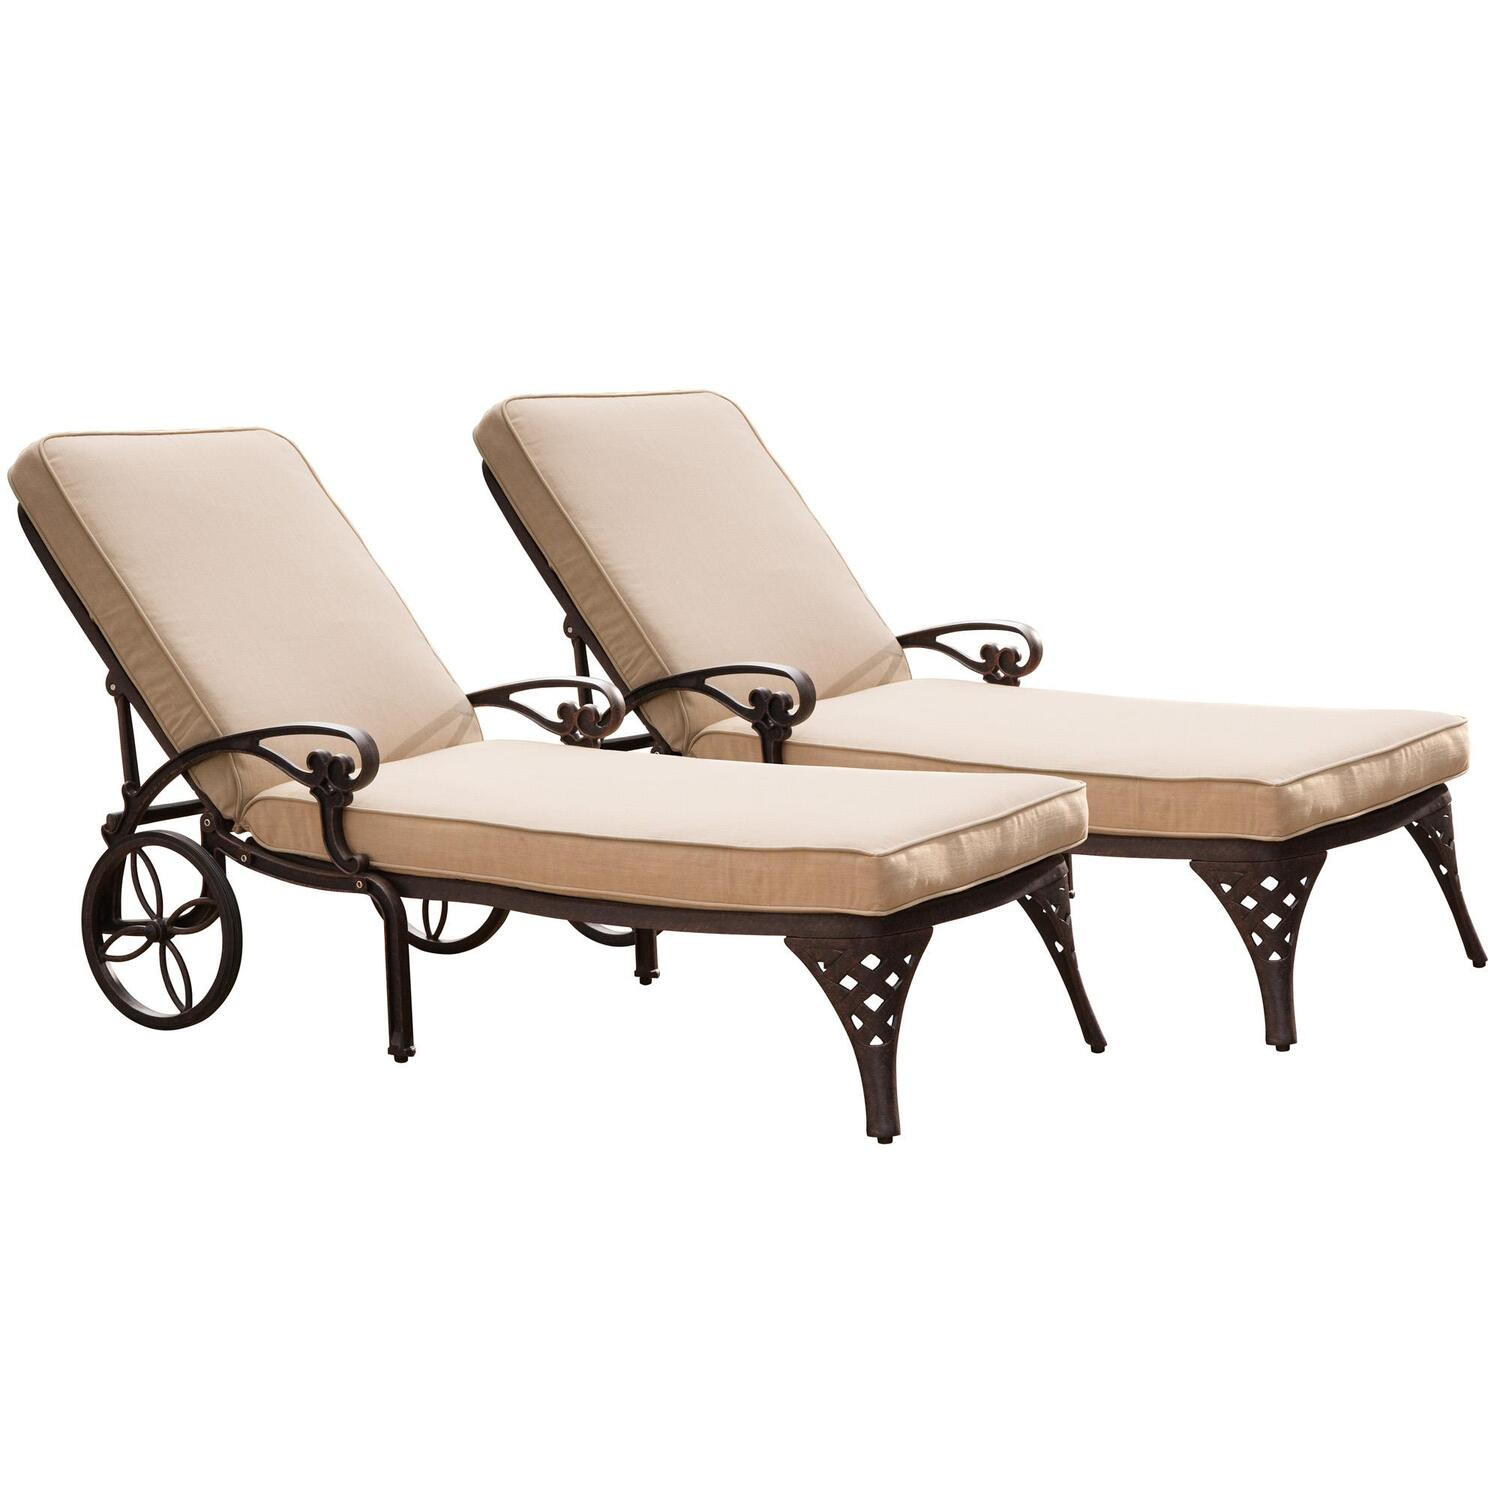 pictures of chaise lounge chairs wheelchair options home styles biscayne 2 cushions by